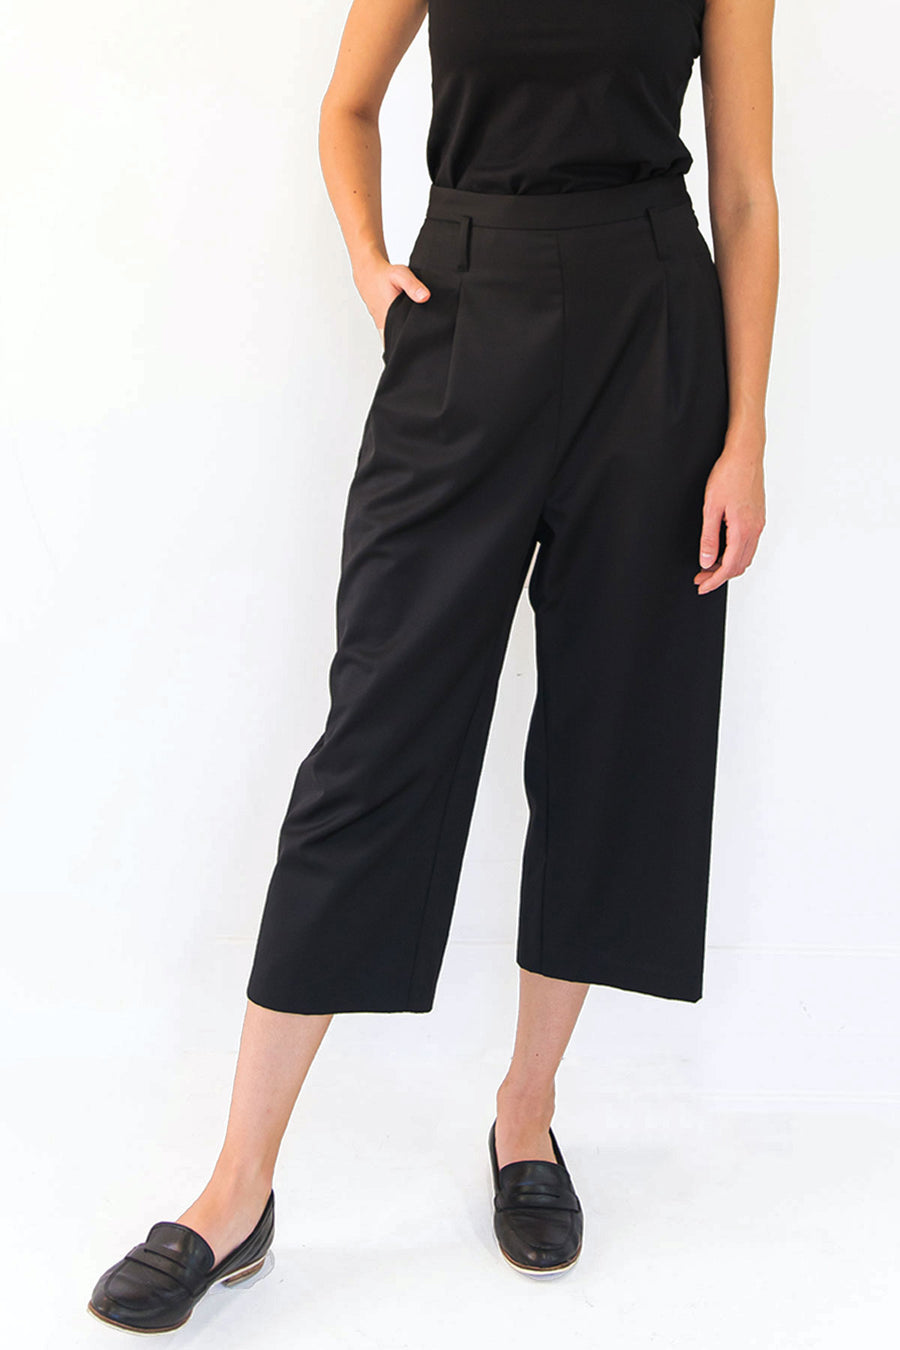 Black culottes with pockets